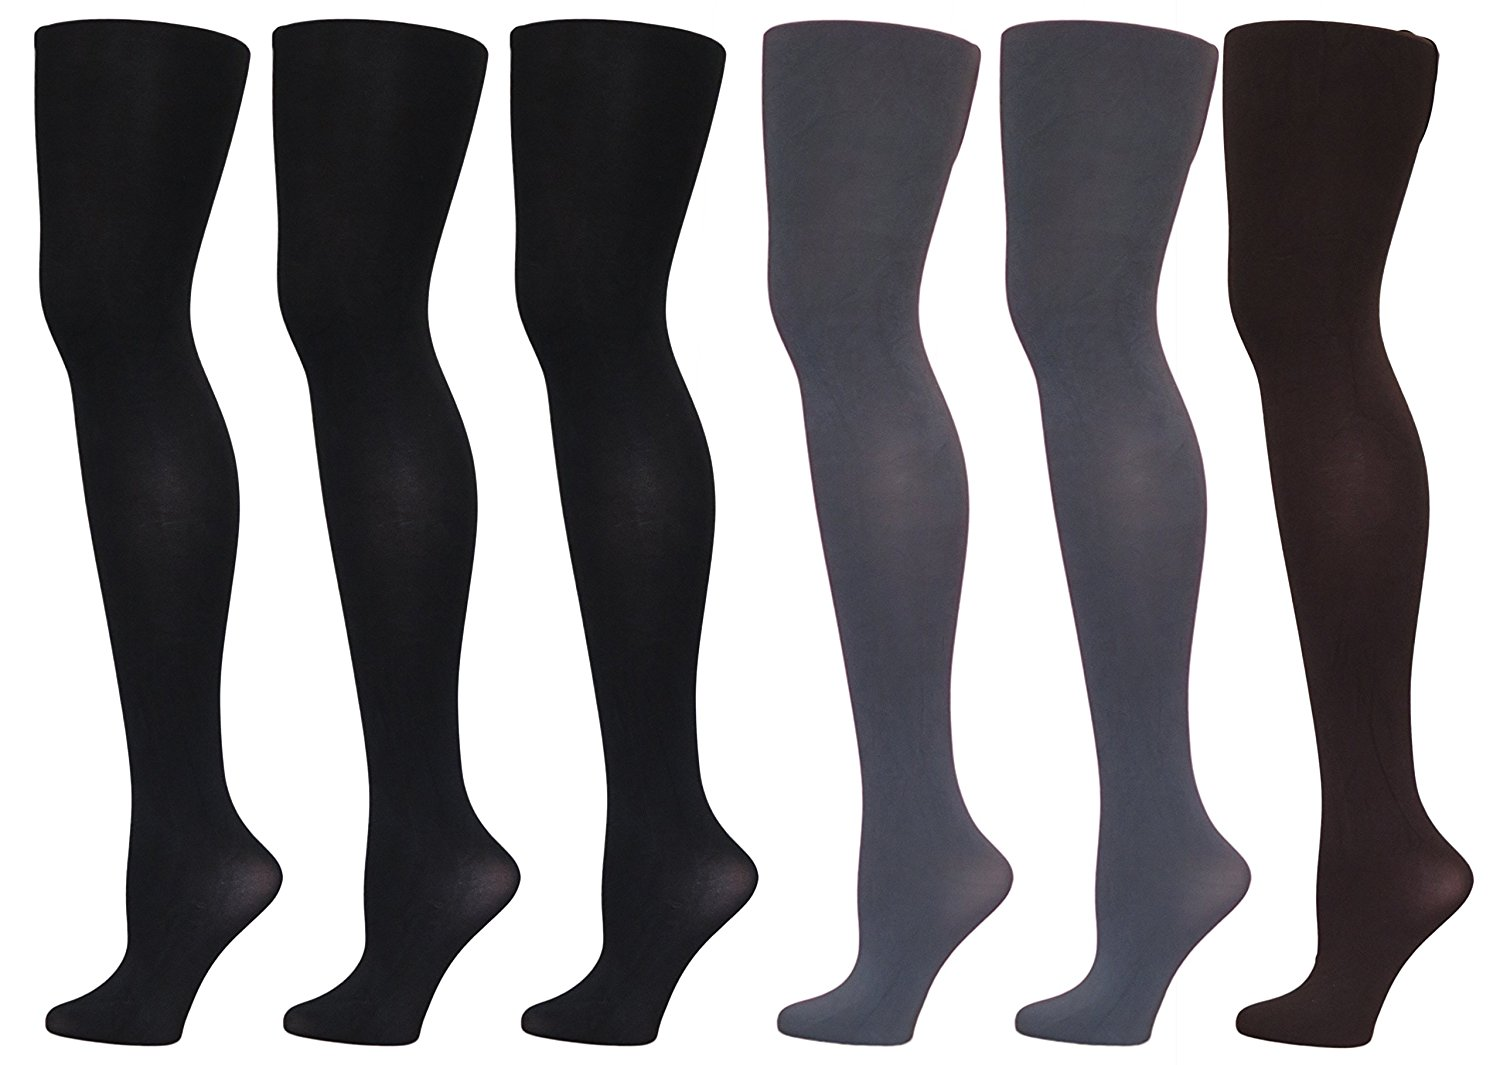 43fd52f622741 Get Quotations · Aura Borealis Womens Ultrasoft Opaque Silky Microfiber  Footed Tights